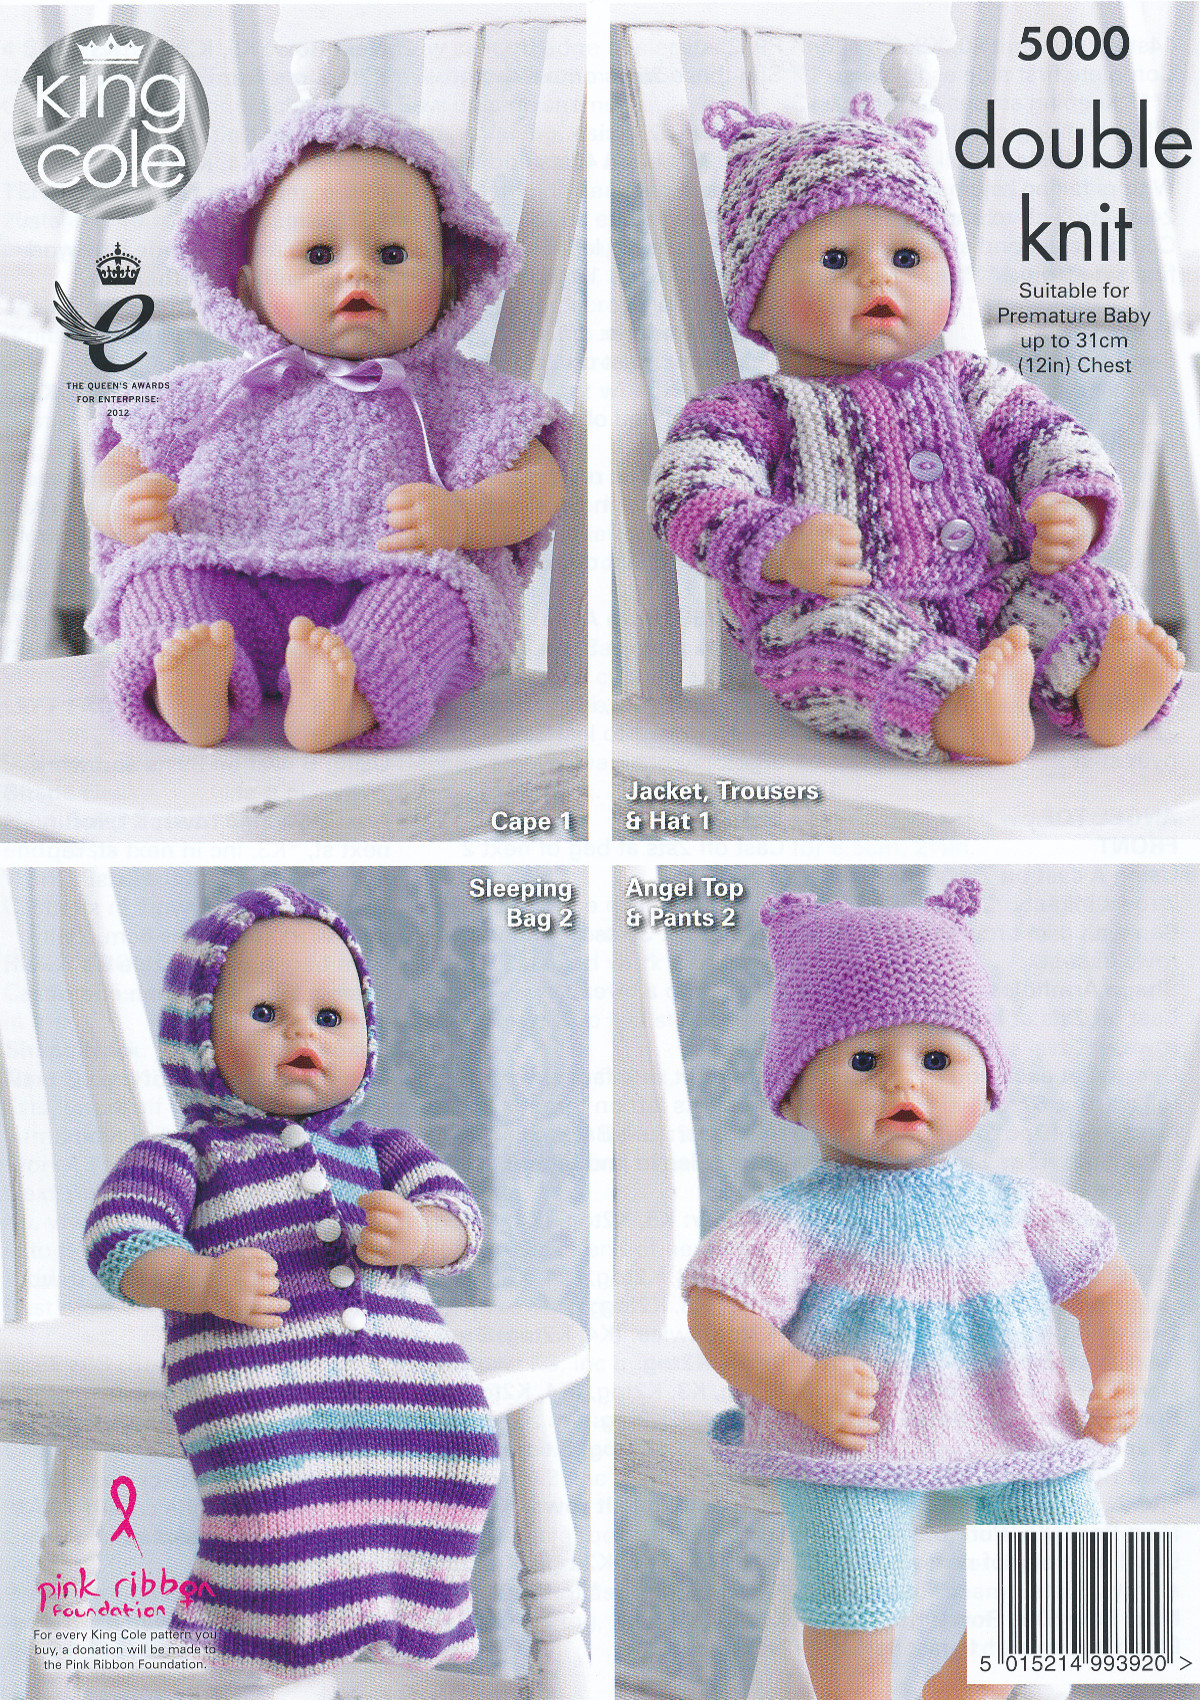 Knitting Patterns For Babies Double Knitting : King Cole Double Knitting DK Pattern for Premature Baby or Dolls Clothes 5000...